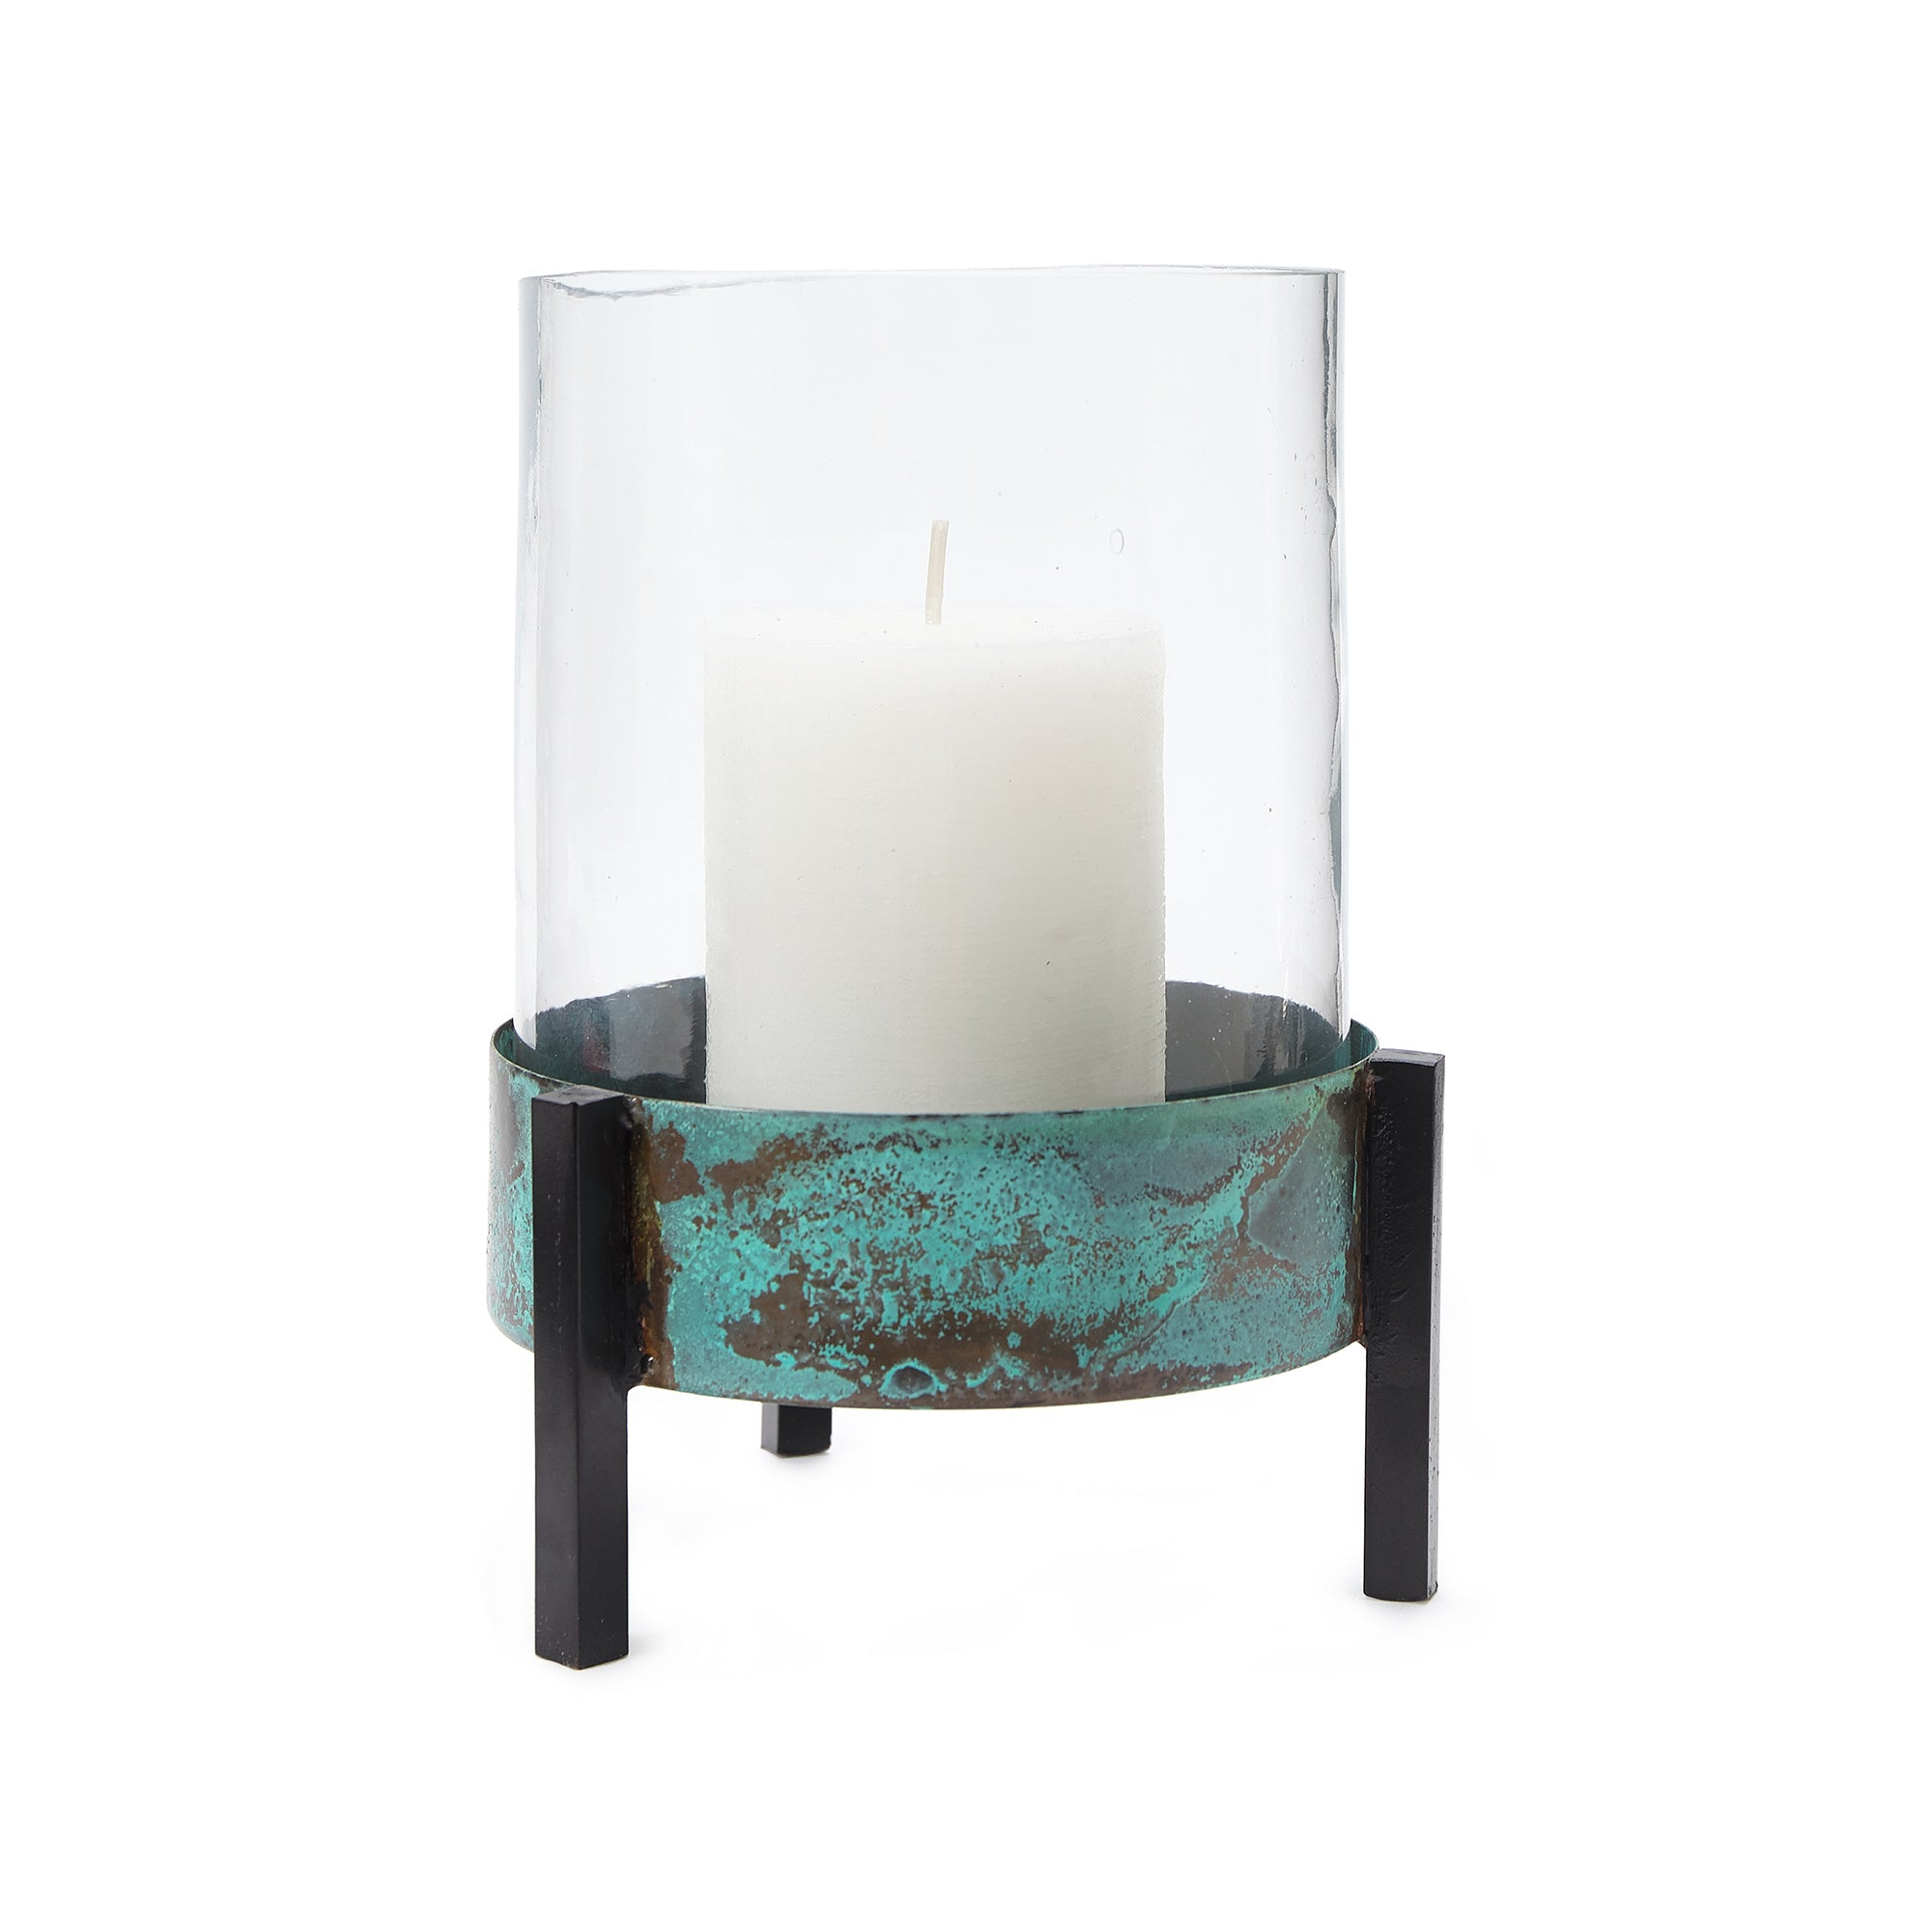 Ozar Windlight Candle Holder turquoise & black, 100% glass & 100% metal